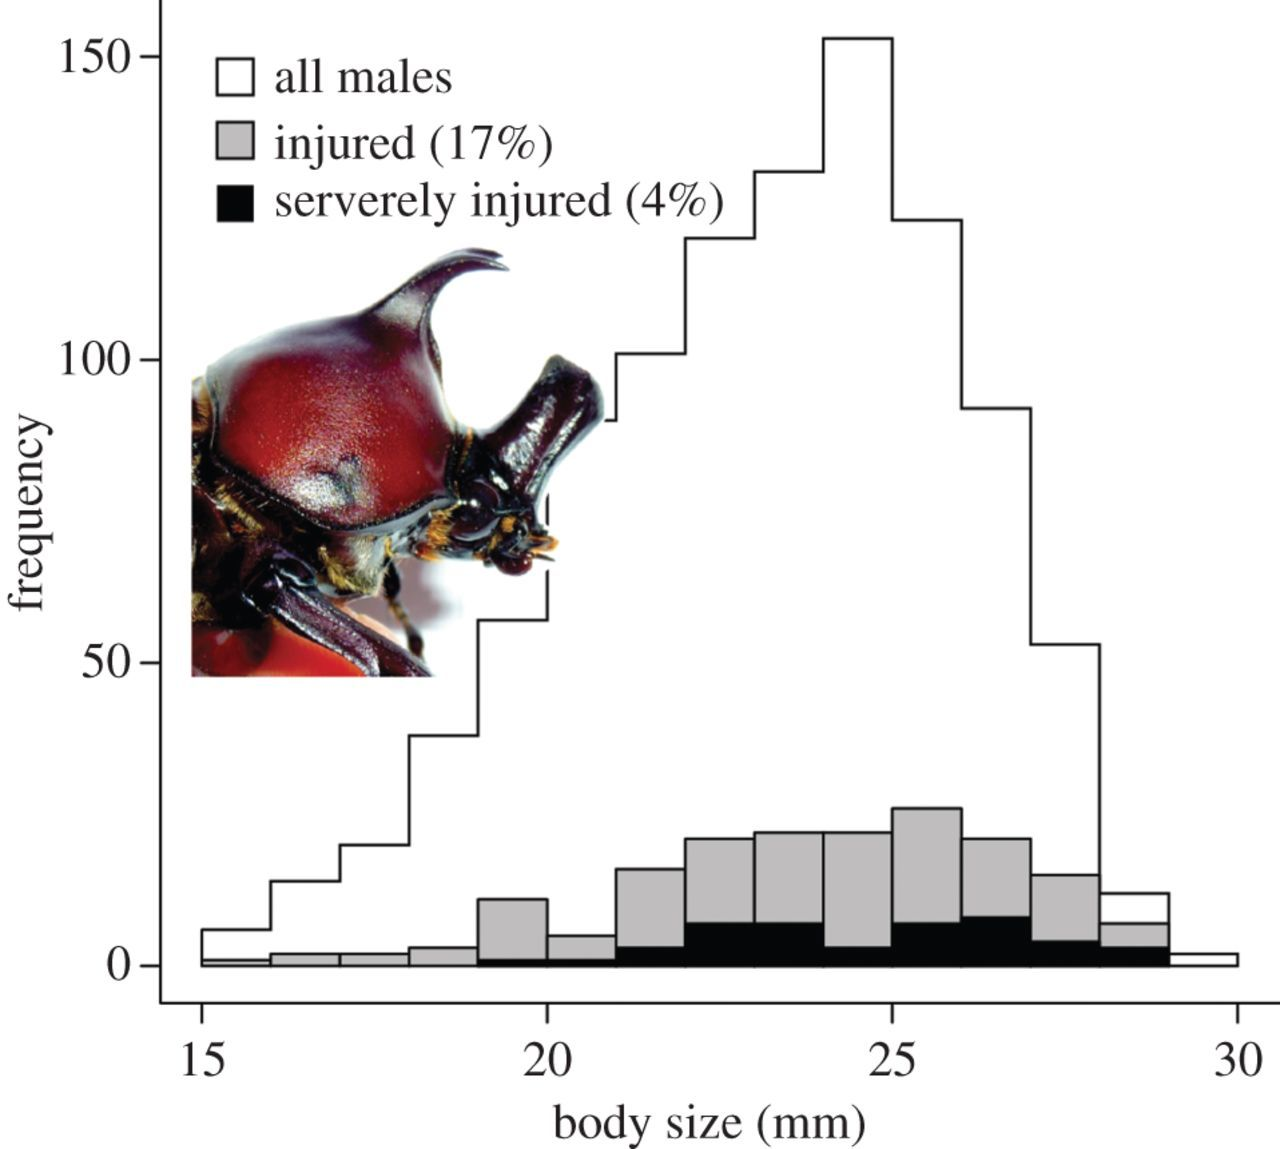 Mechanical Limits To Maximum Weapon Size In A Giant Rhinoceros Beetle Diagram Related Keywords Suggestions Long Download Figure